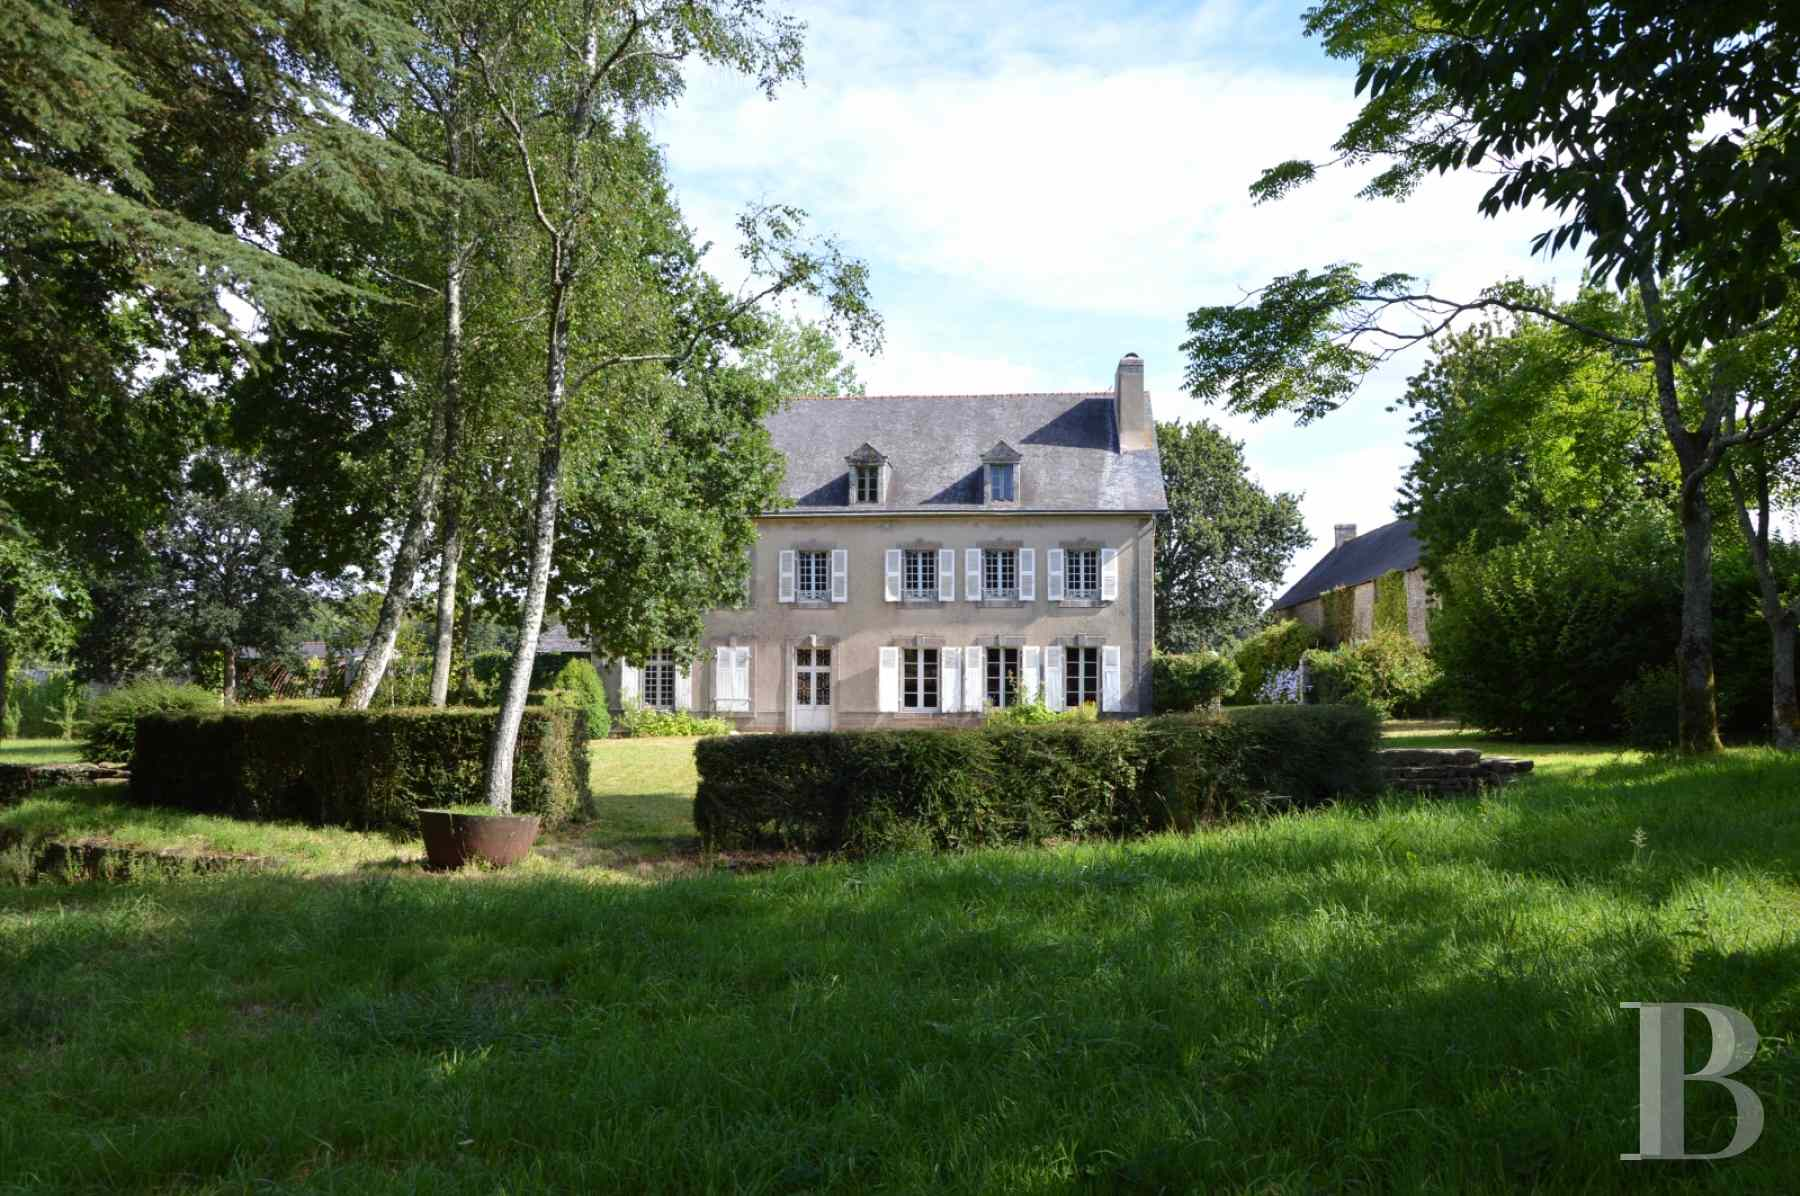 France mansions for sale brittany finistere property - 1 zoom